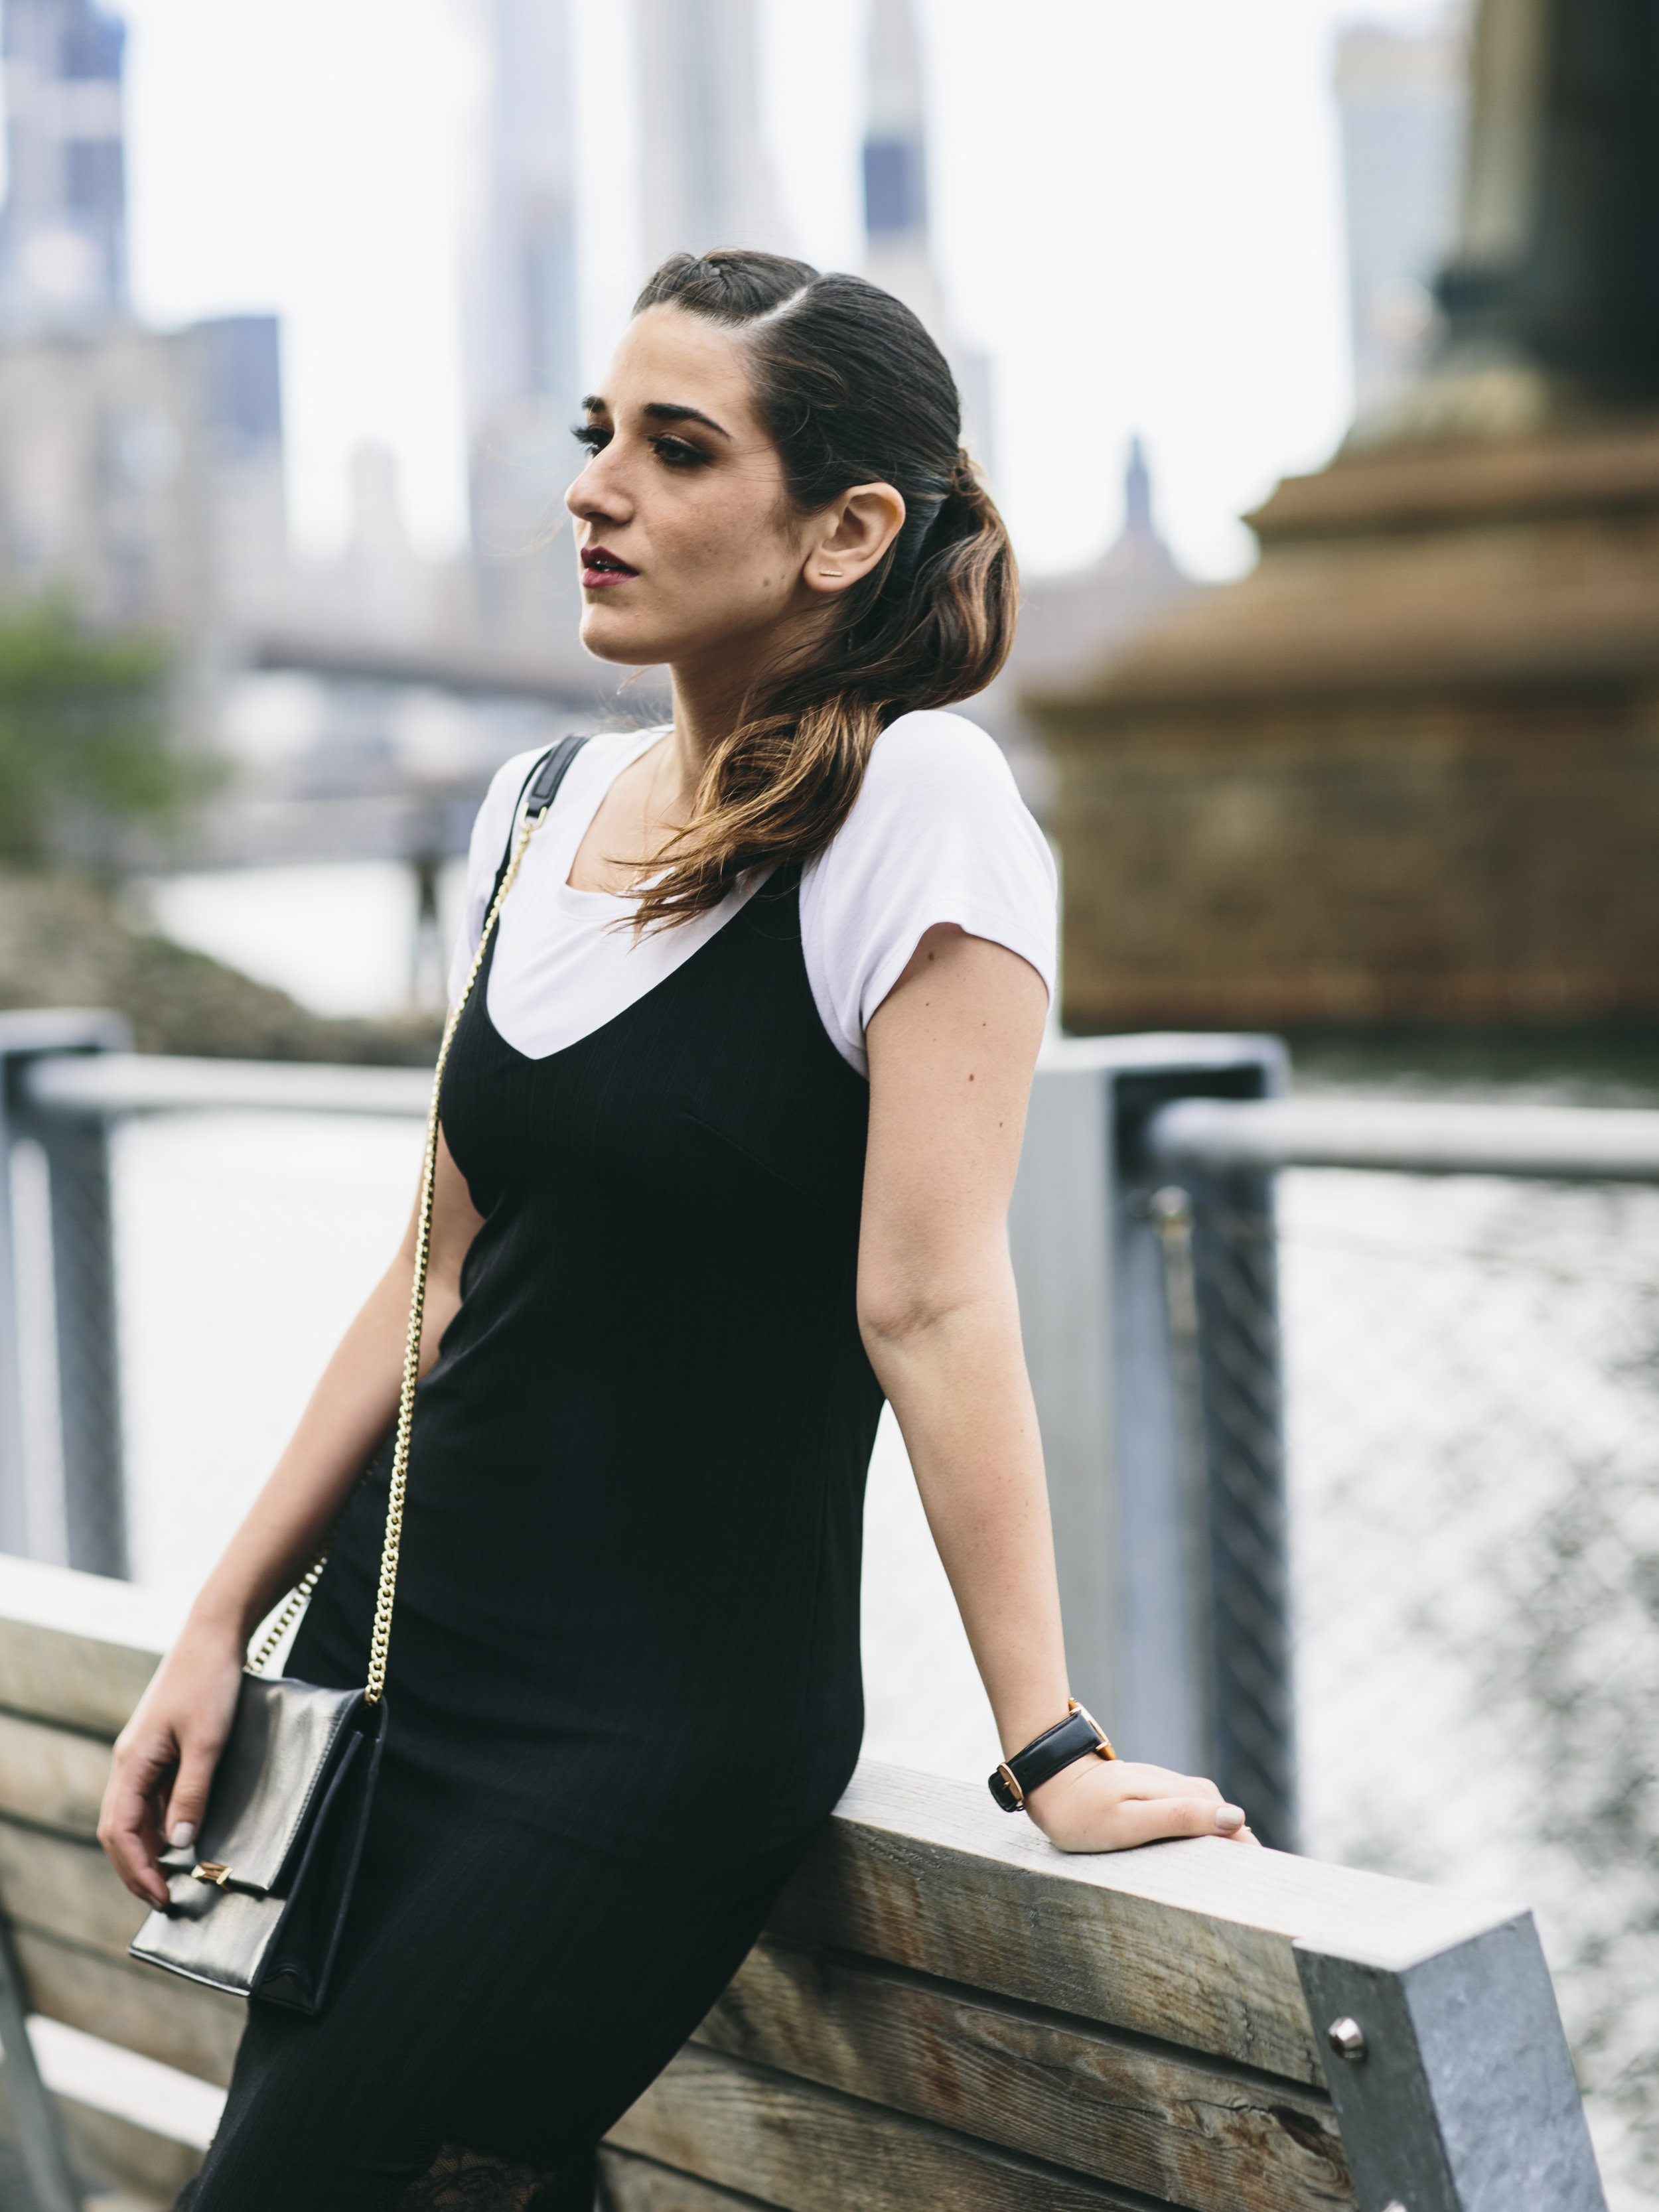 Black Lace Slip Dress Over White Tee Louboutins & Love Fashion Blog Esther Santer NYC Street Style Blogger Outfit OOTD Trendy Booties M4D3 Online Shopping Girl Women Fall Look Ivanka Trump Cocktail Bag Watch Edgy Wear Inspo Ponytail Hair Fashionista.jpg